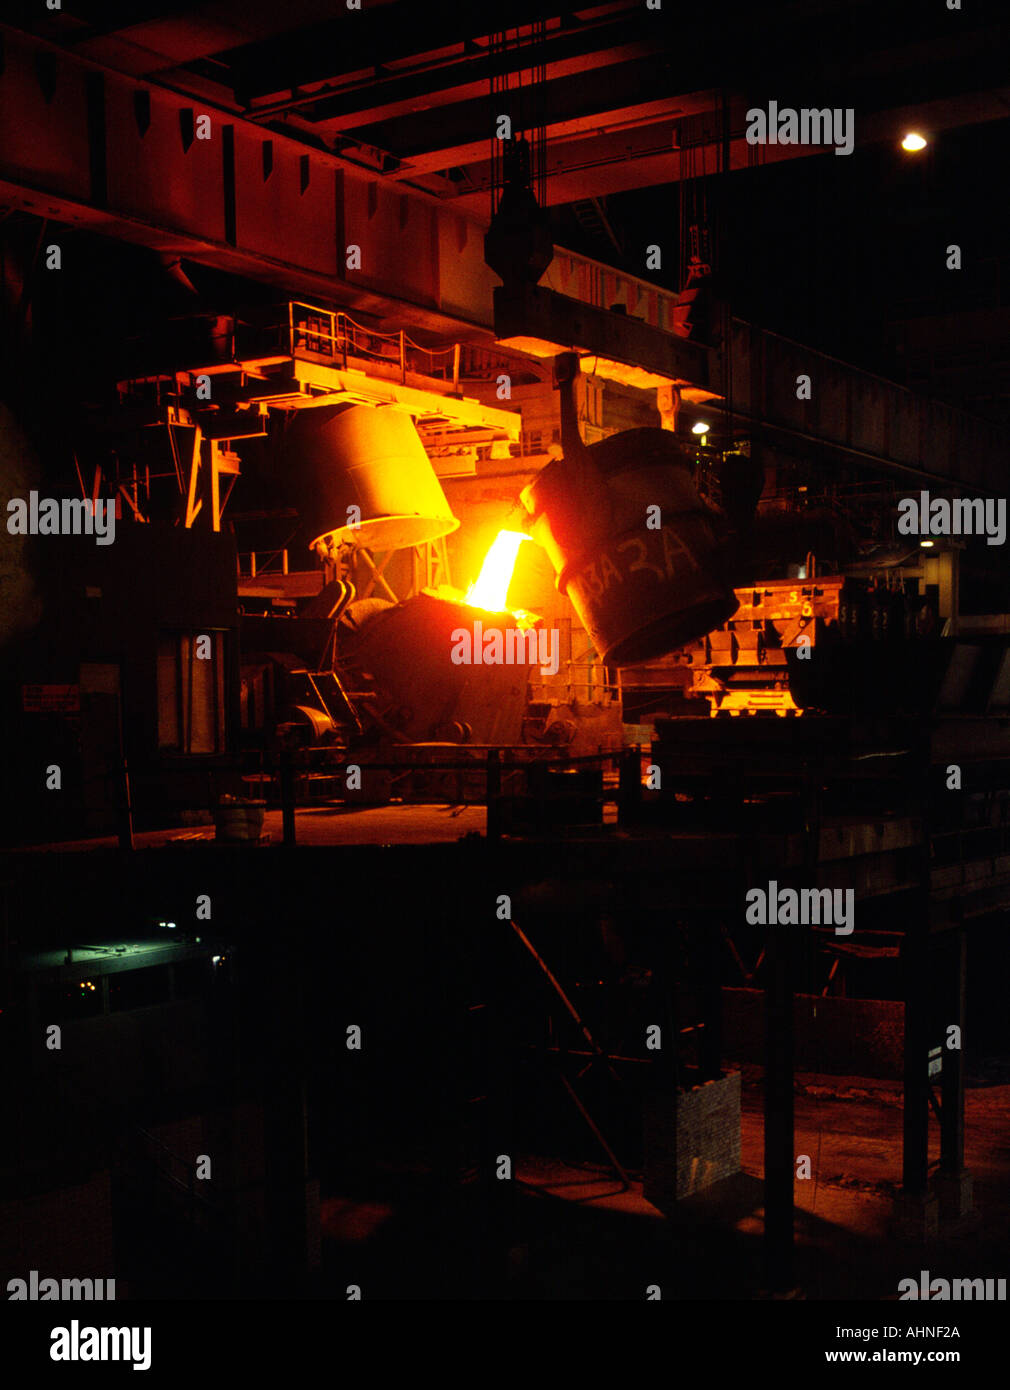 Steel furnace pouring charging molten steel into AOD vessel during stainless steel refining at British Steel Stainless Sheffield - Stock Image